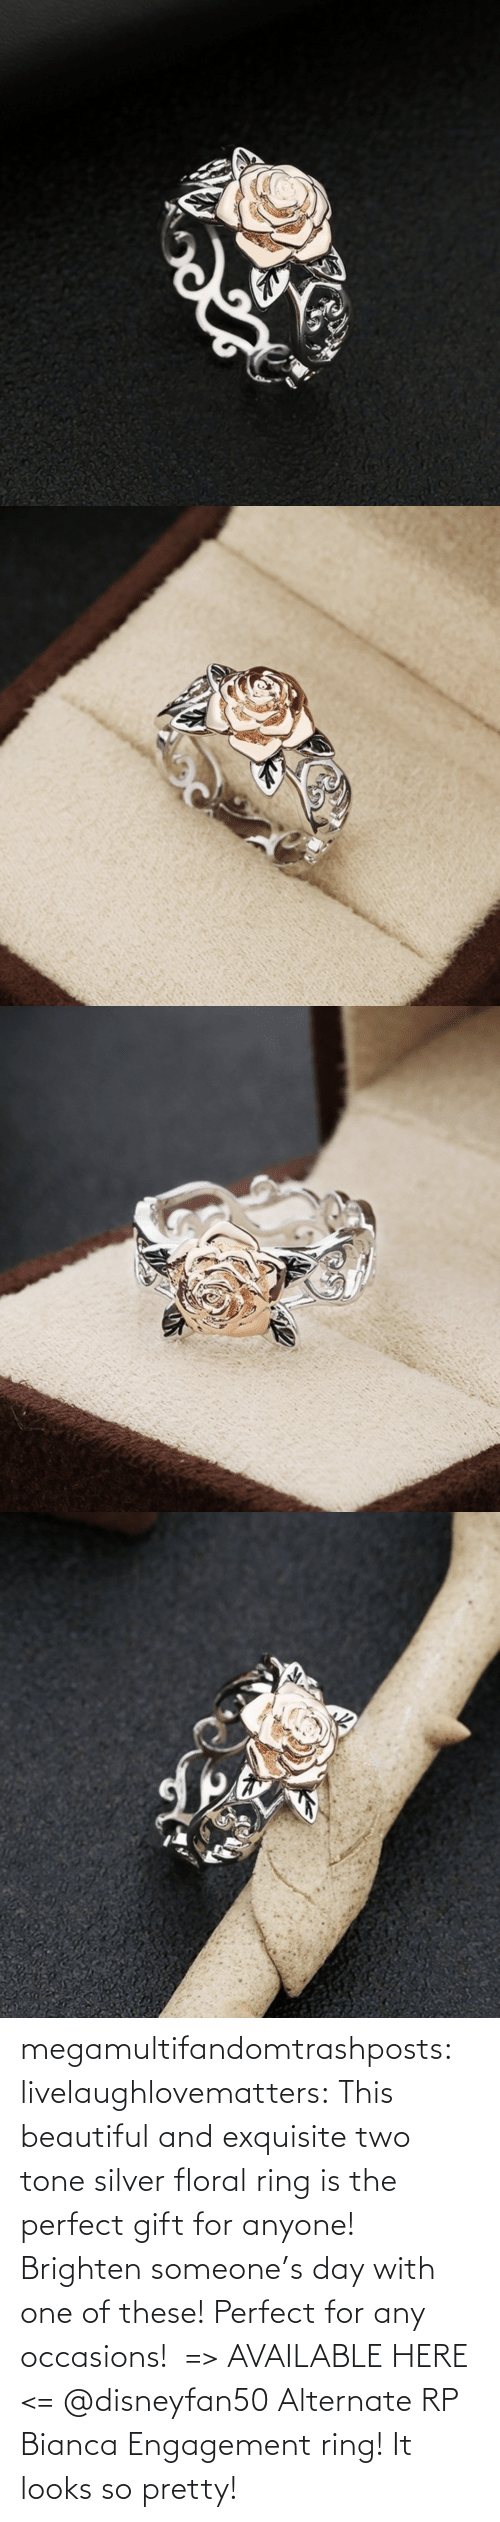 beautiful: megamultifandomtrashposts:  livelaughlovematters: This beautiful and exquisite two tone silver floral ring is the perfect gift for anyone! Brighten someone's day with one of these! Perfect for any occasions!  => AVAILABLE HERE <=    @disneyfan50 Alternate RP Bianca Engagement ring! It looks so pretty!